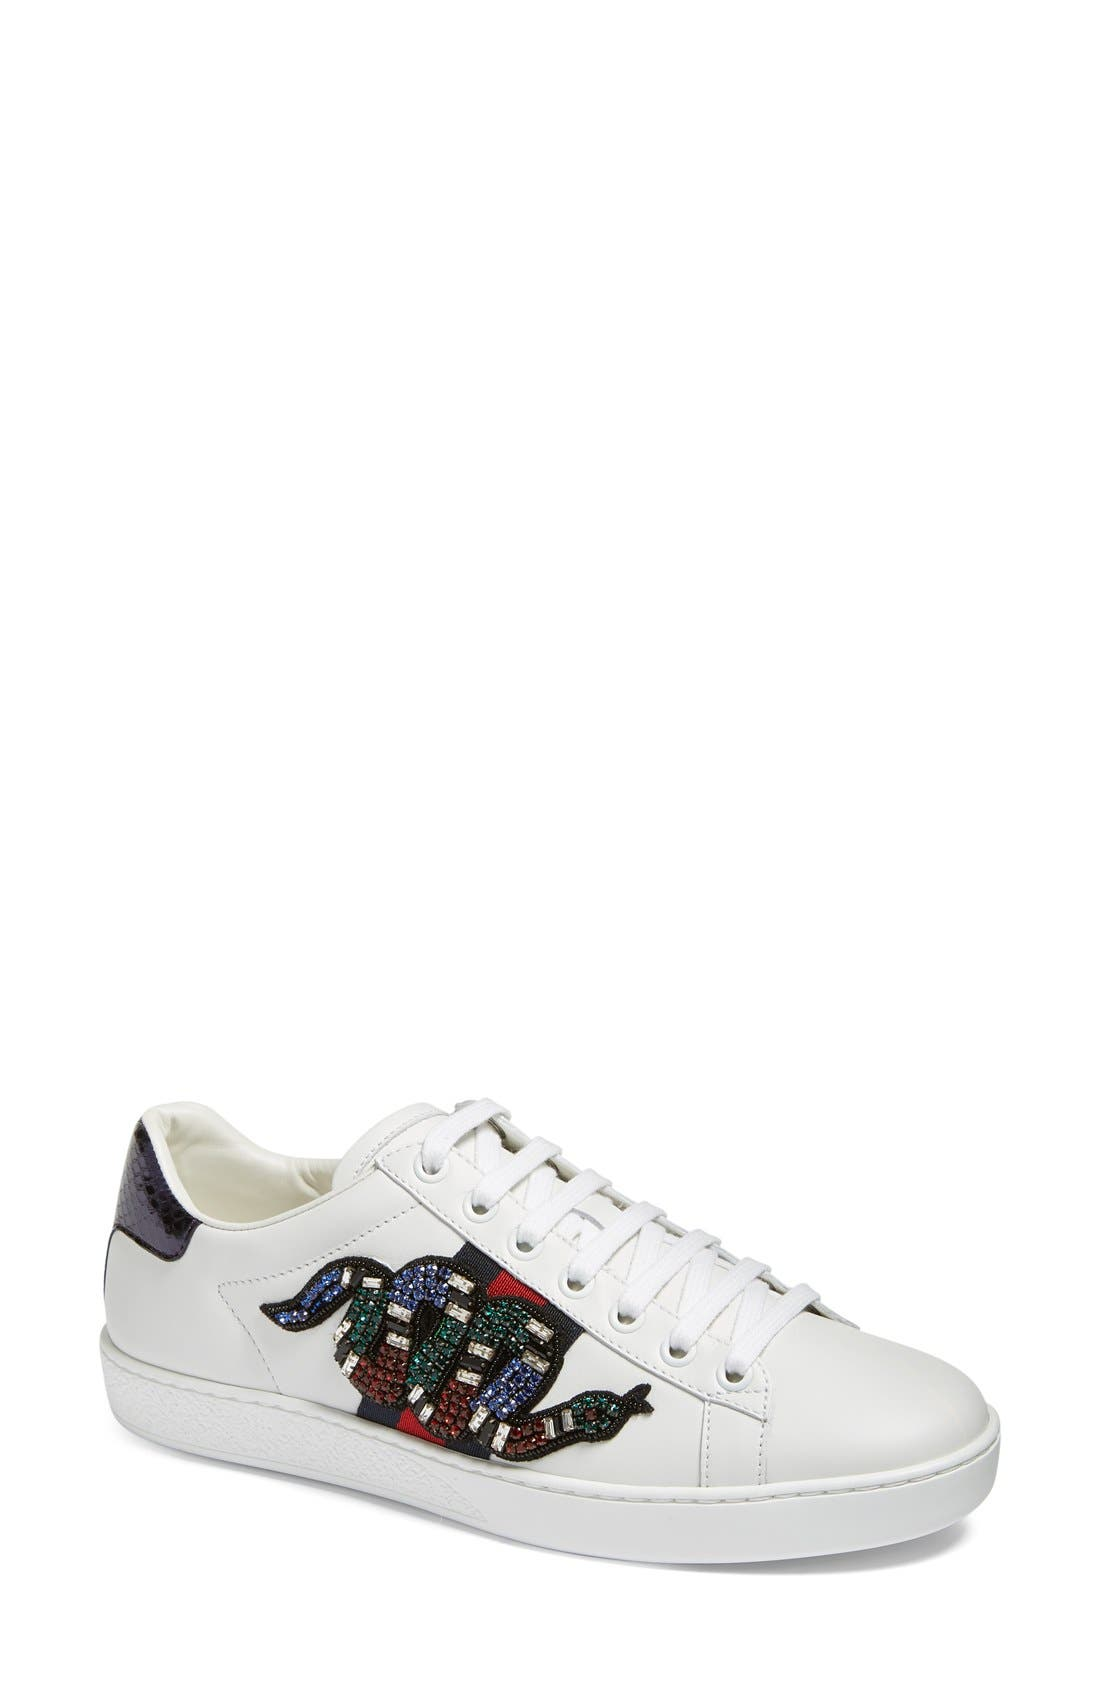 New Age Snake Embellished Sneaker,                         Main,                         color, White Multi